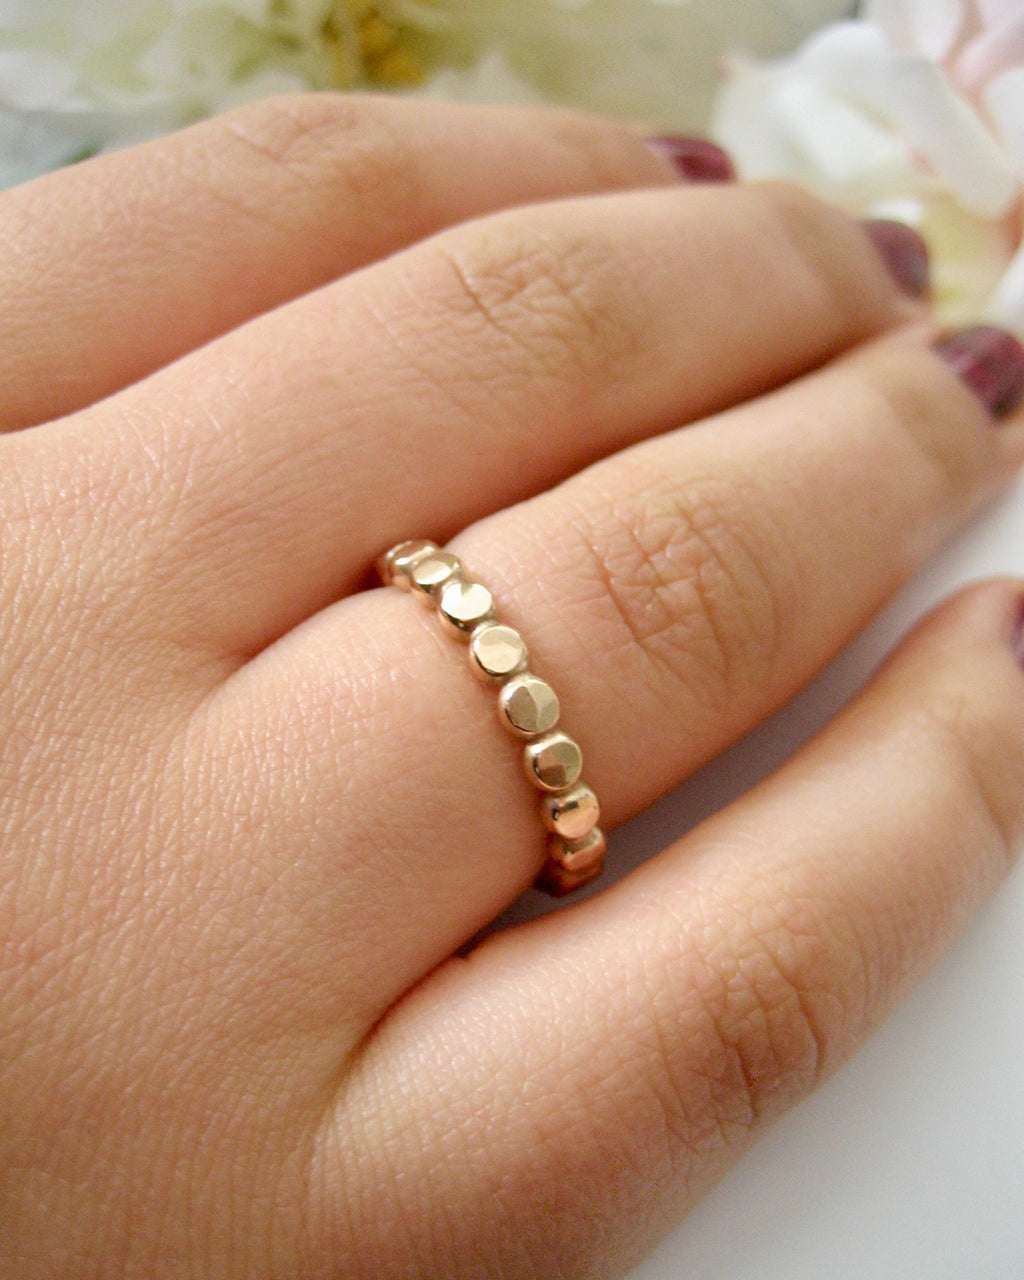 Bred guld ring hamrad 14k gold filled ring